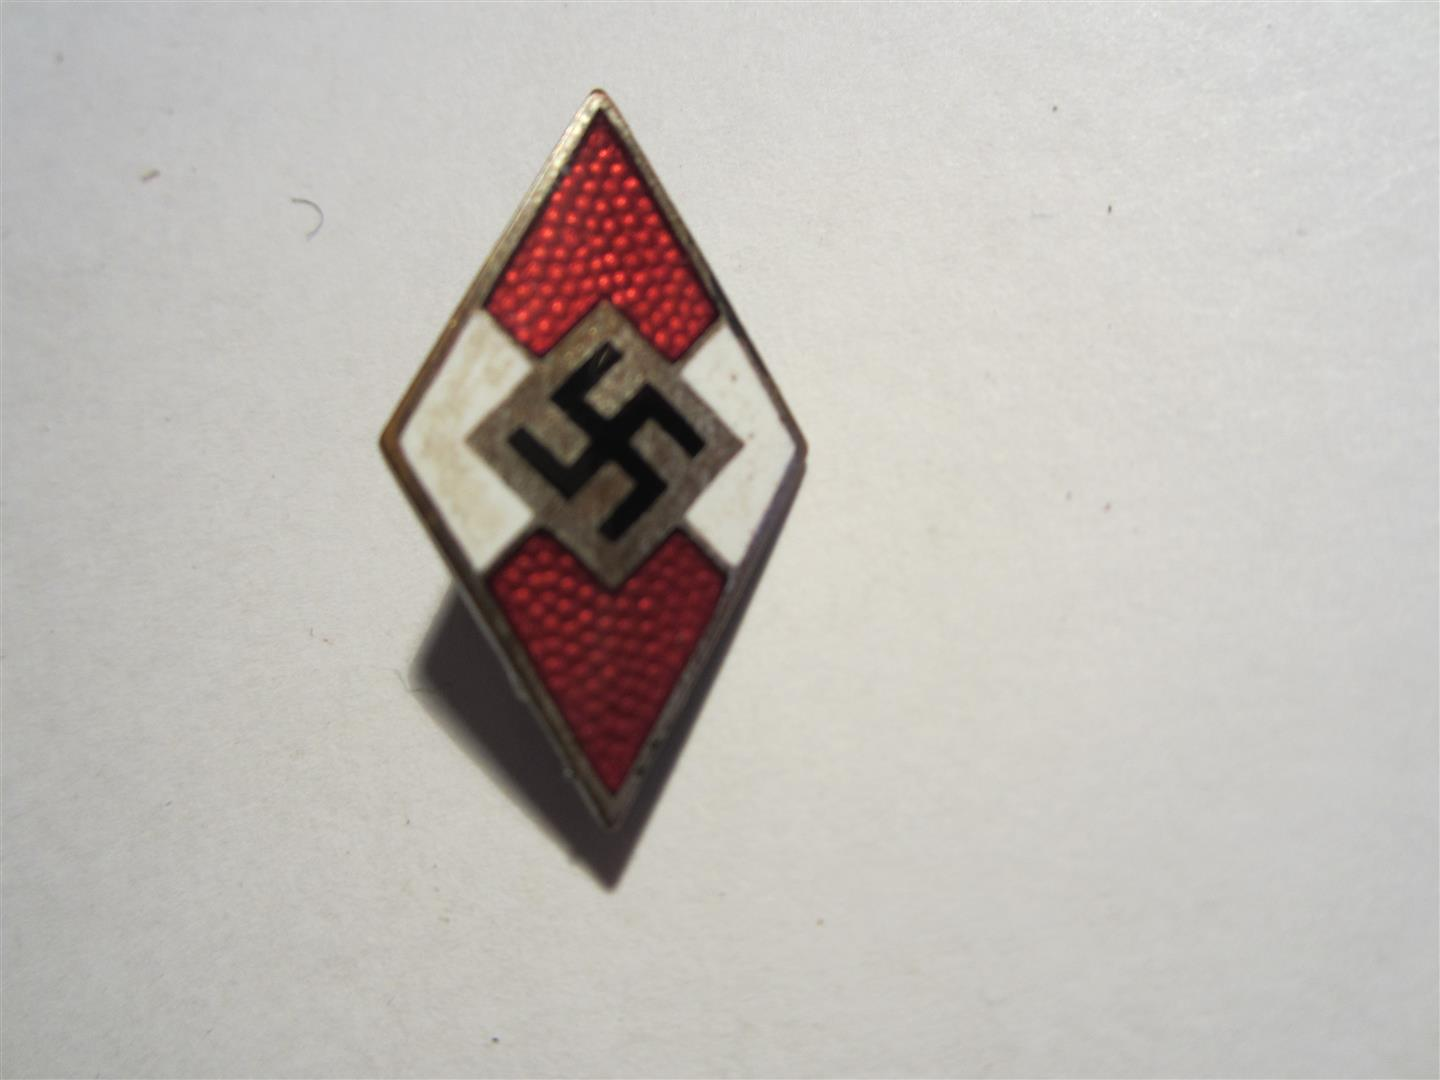 WW2 German H.J. Cap Badge